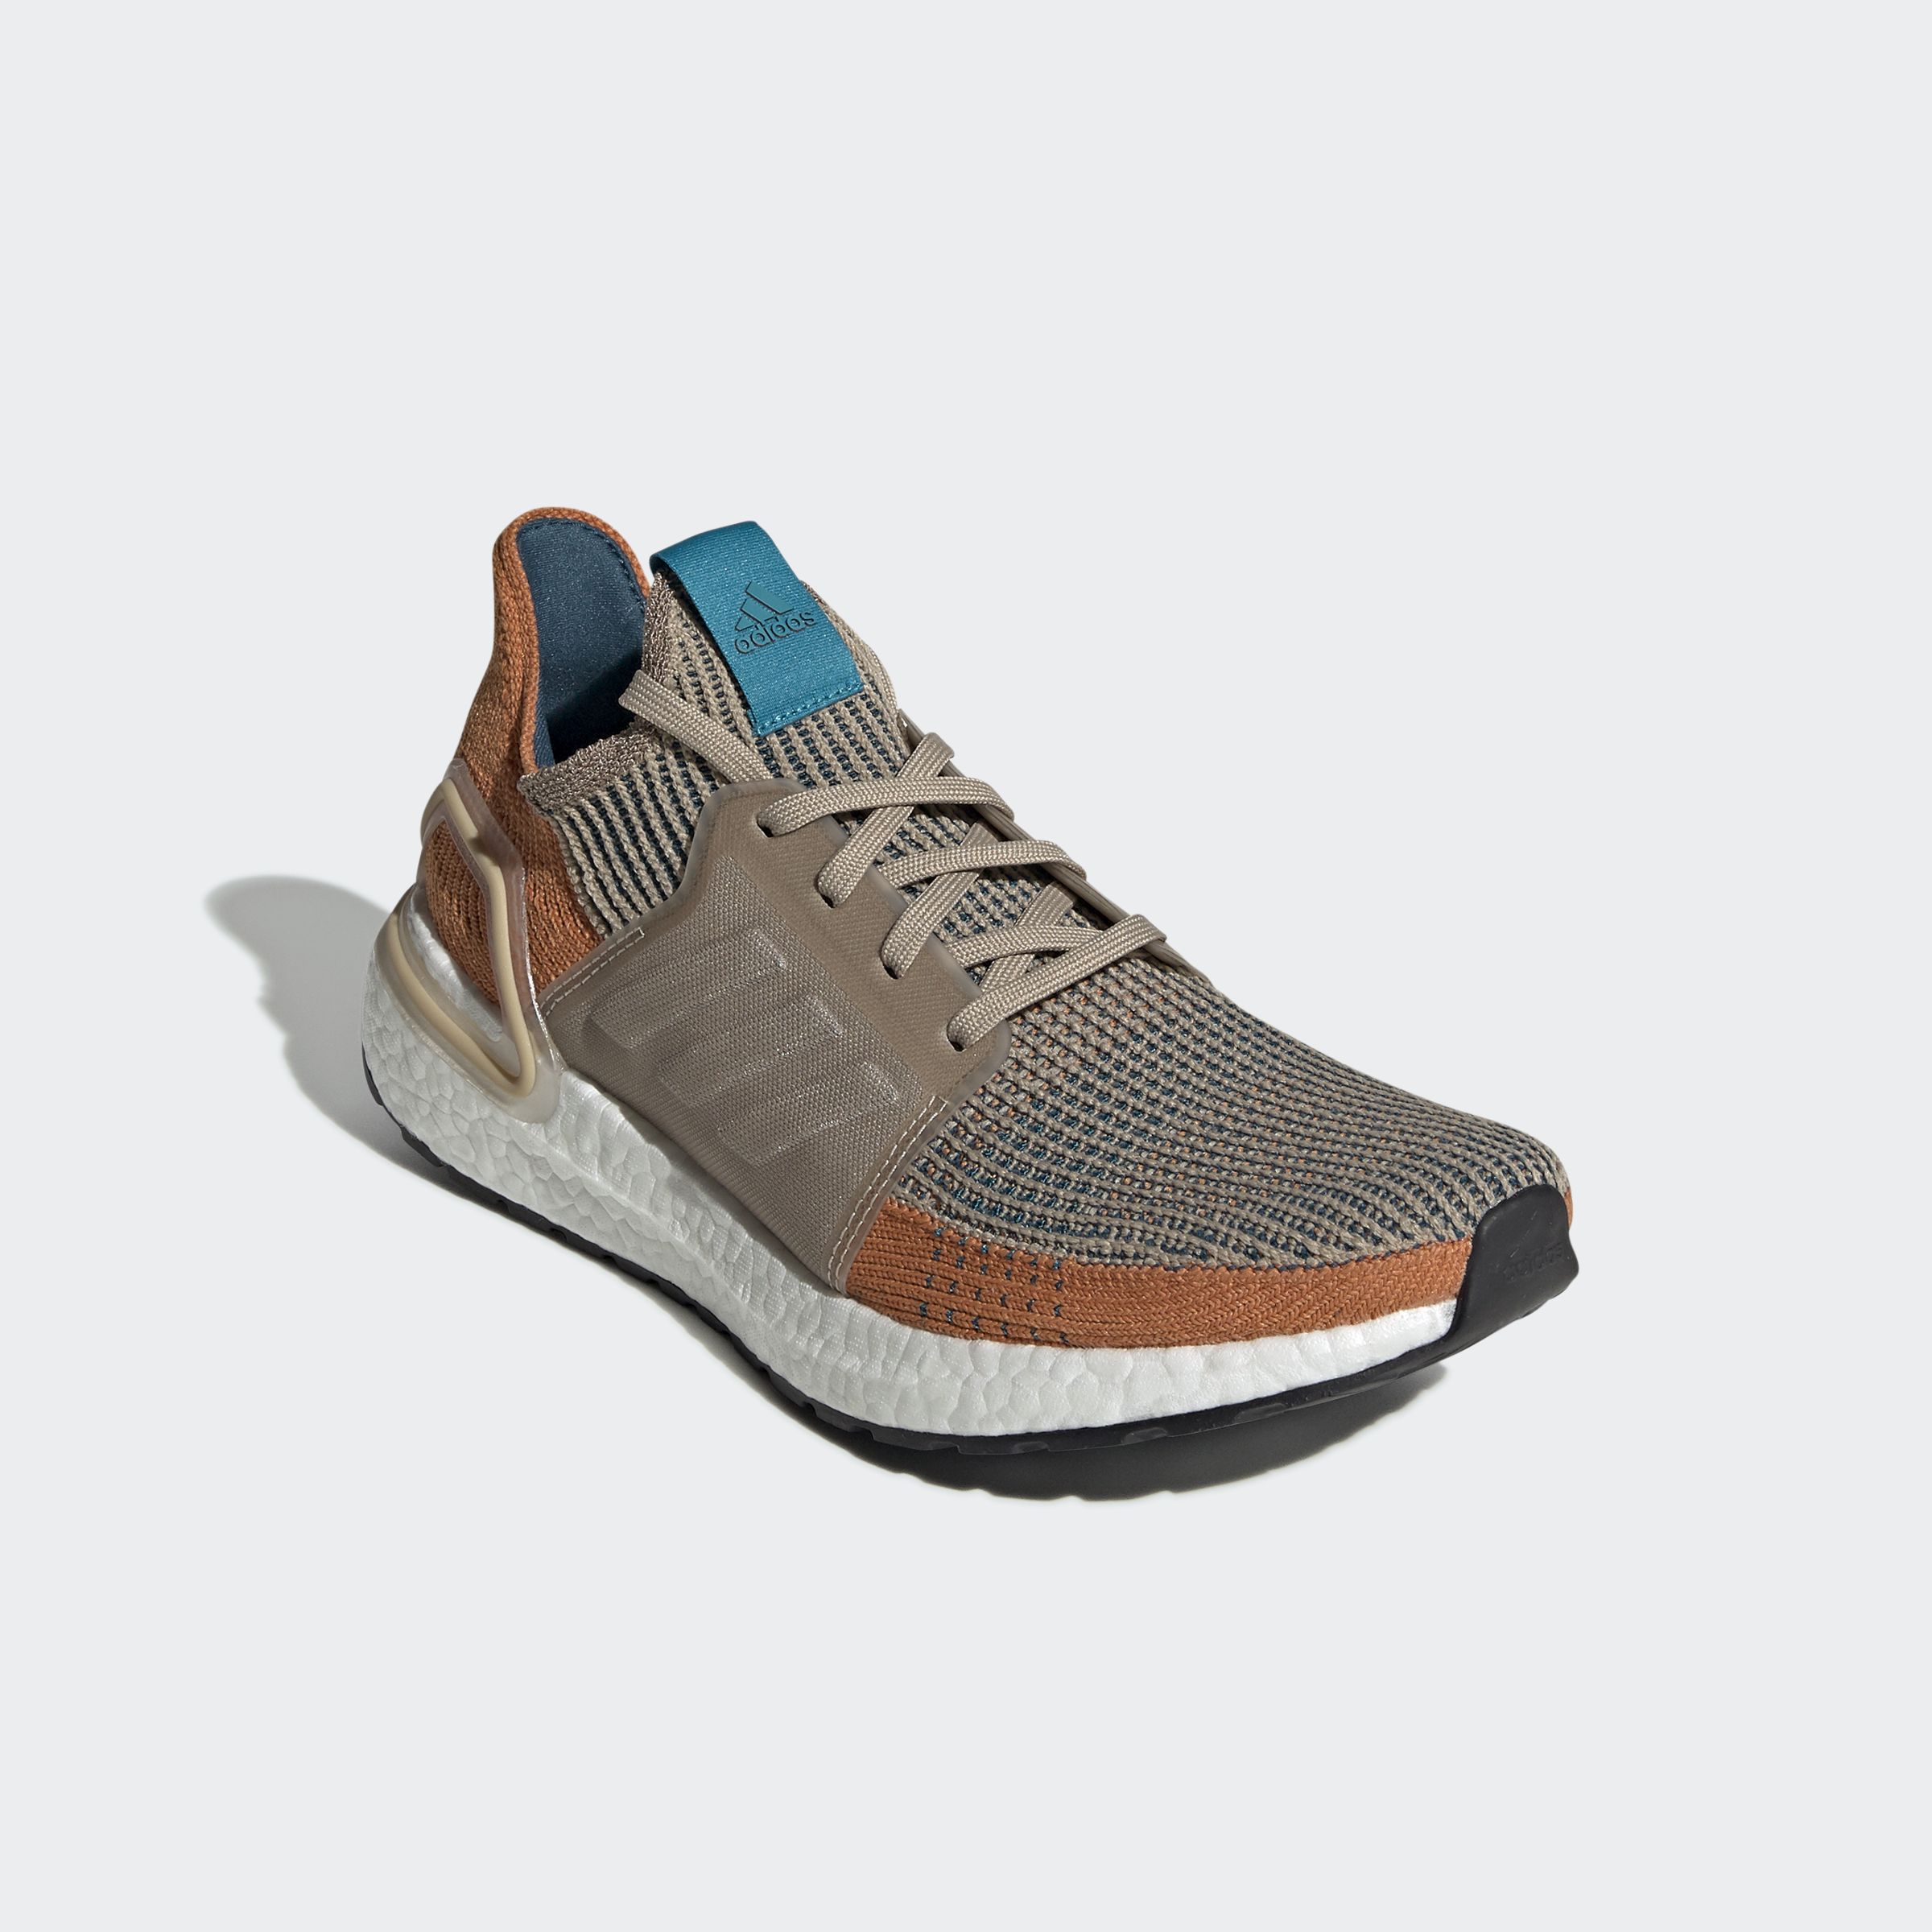 adidas-Ultraboost-19-Shoes-Athletic-amp-Sneakers thumbnail 113